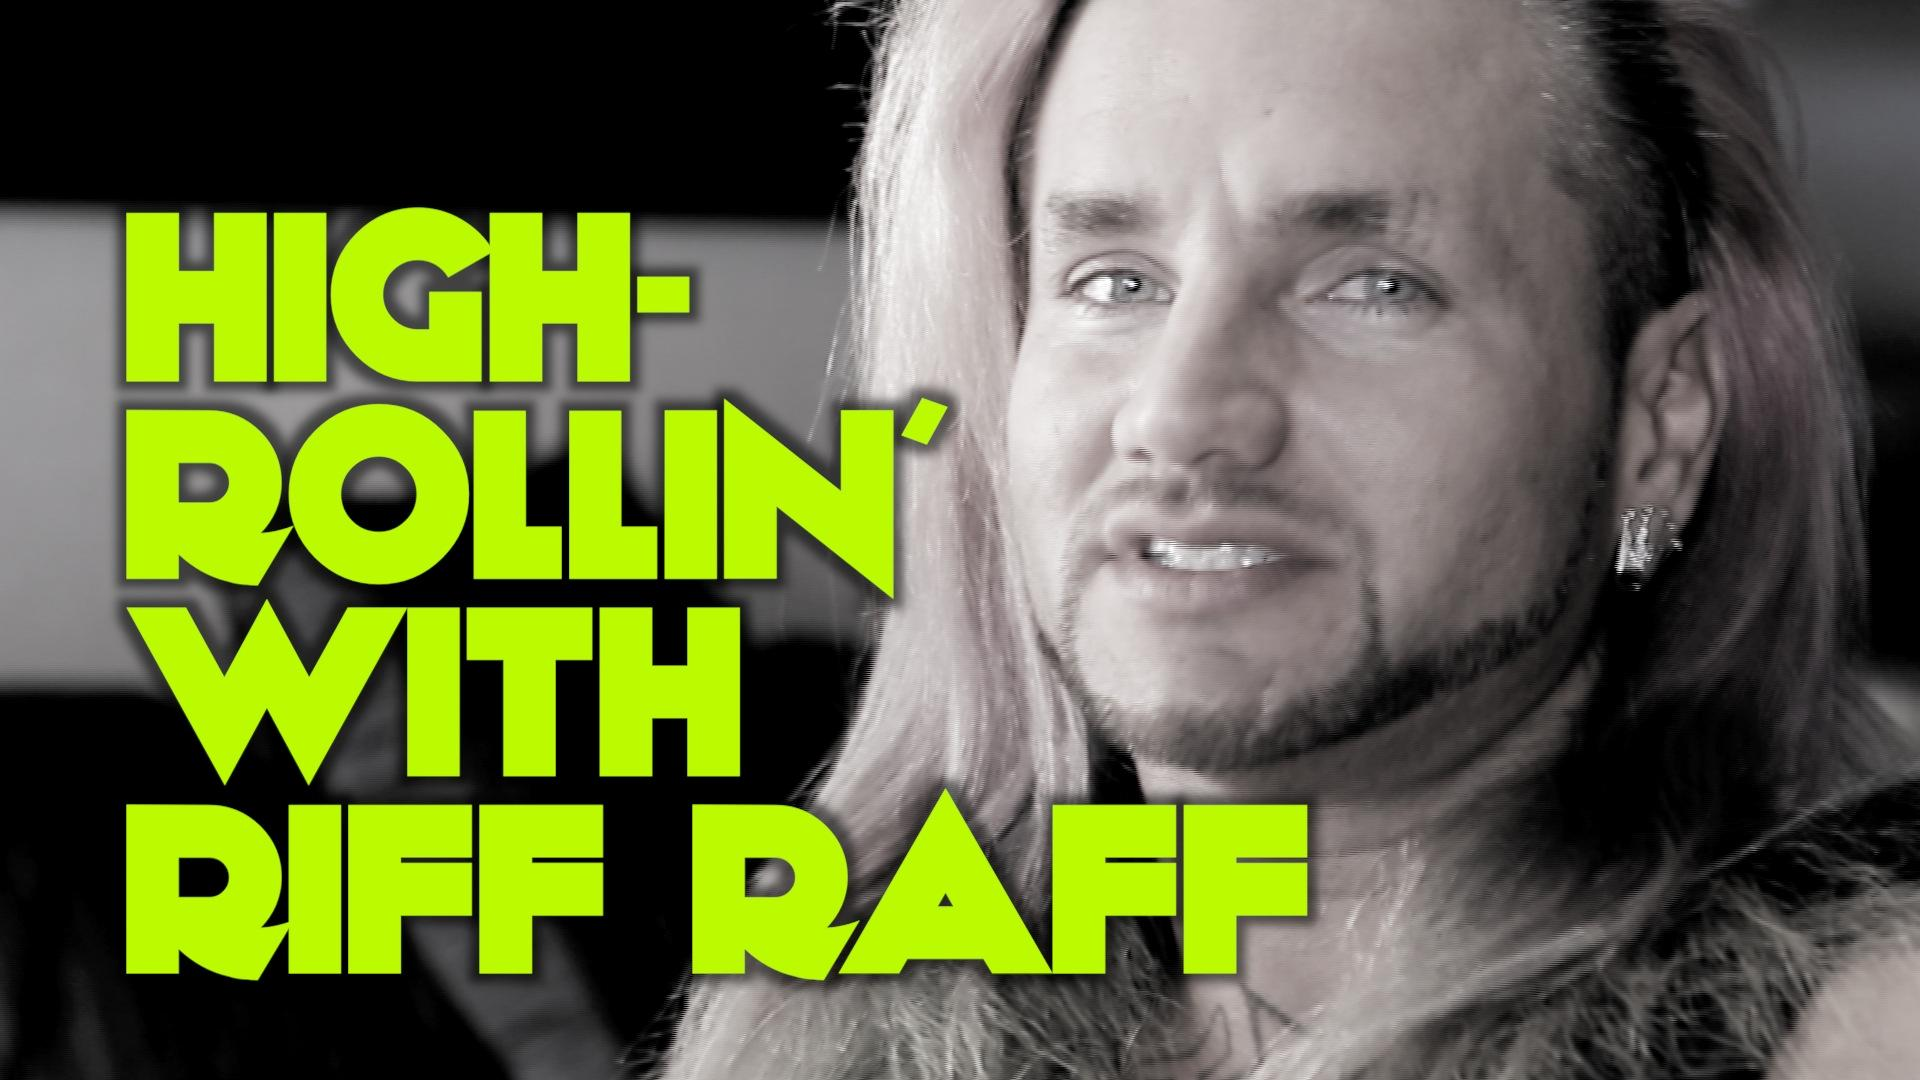 Jody Highrollin' With Riff Raff In Las Vegas